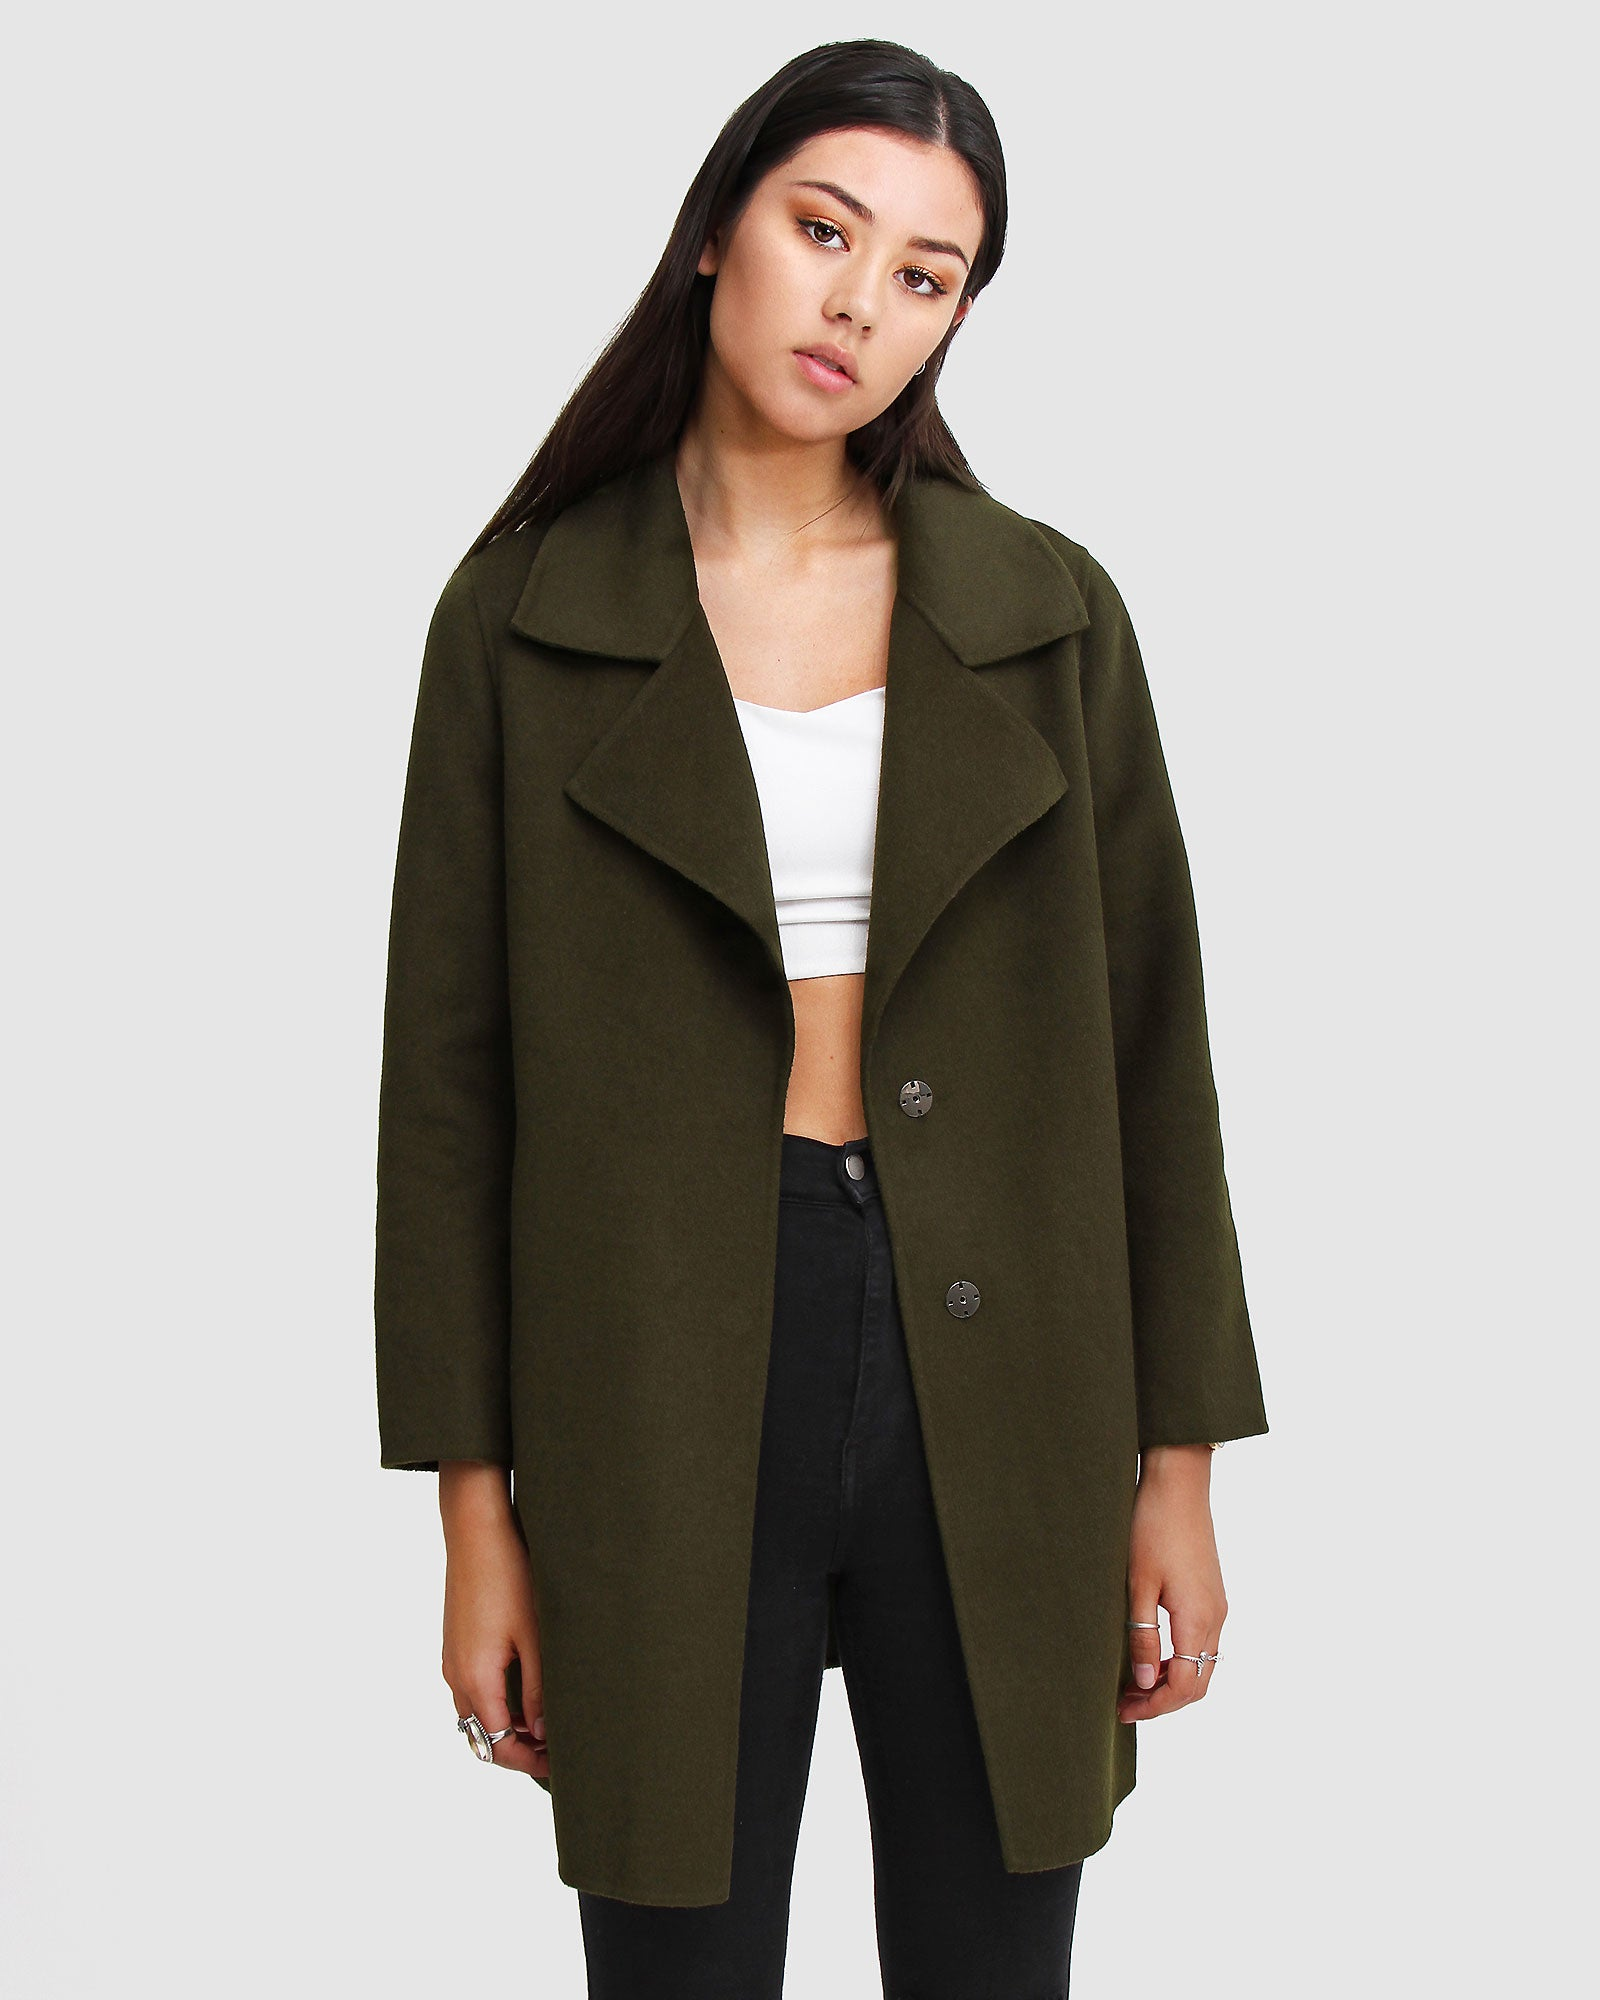 Ex-Boyfriend  Wool Blend Oversized Jacket - Military Green